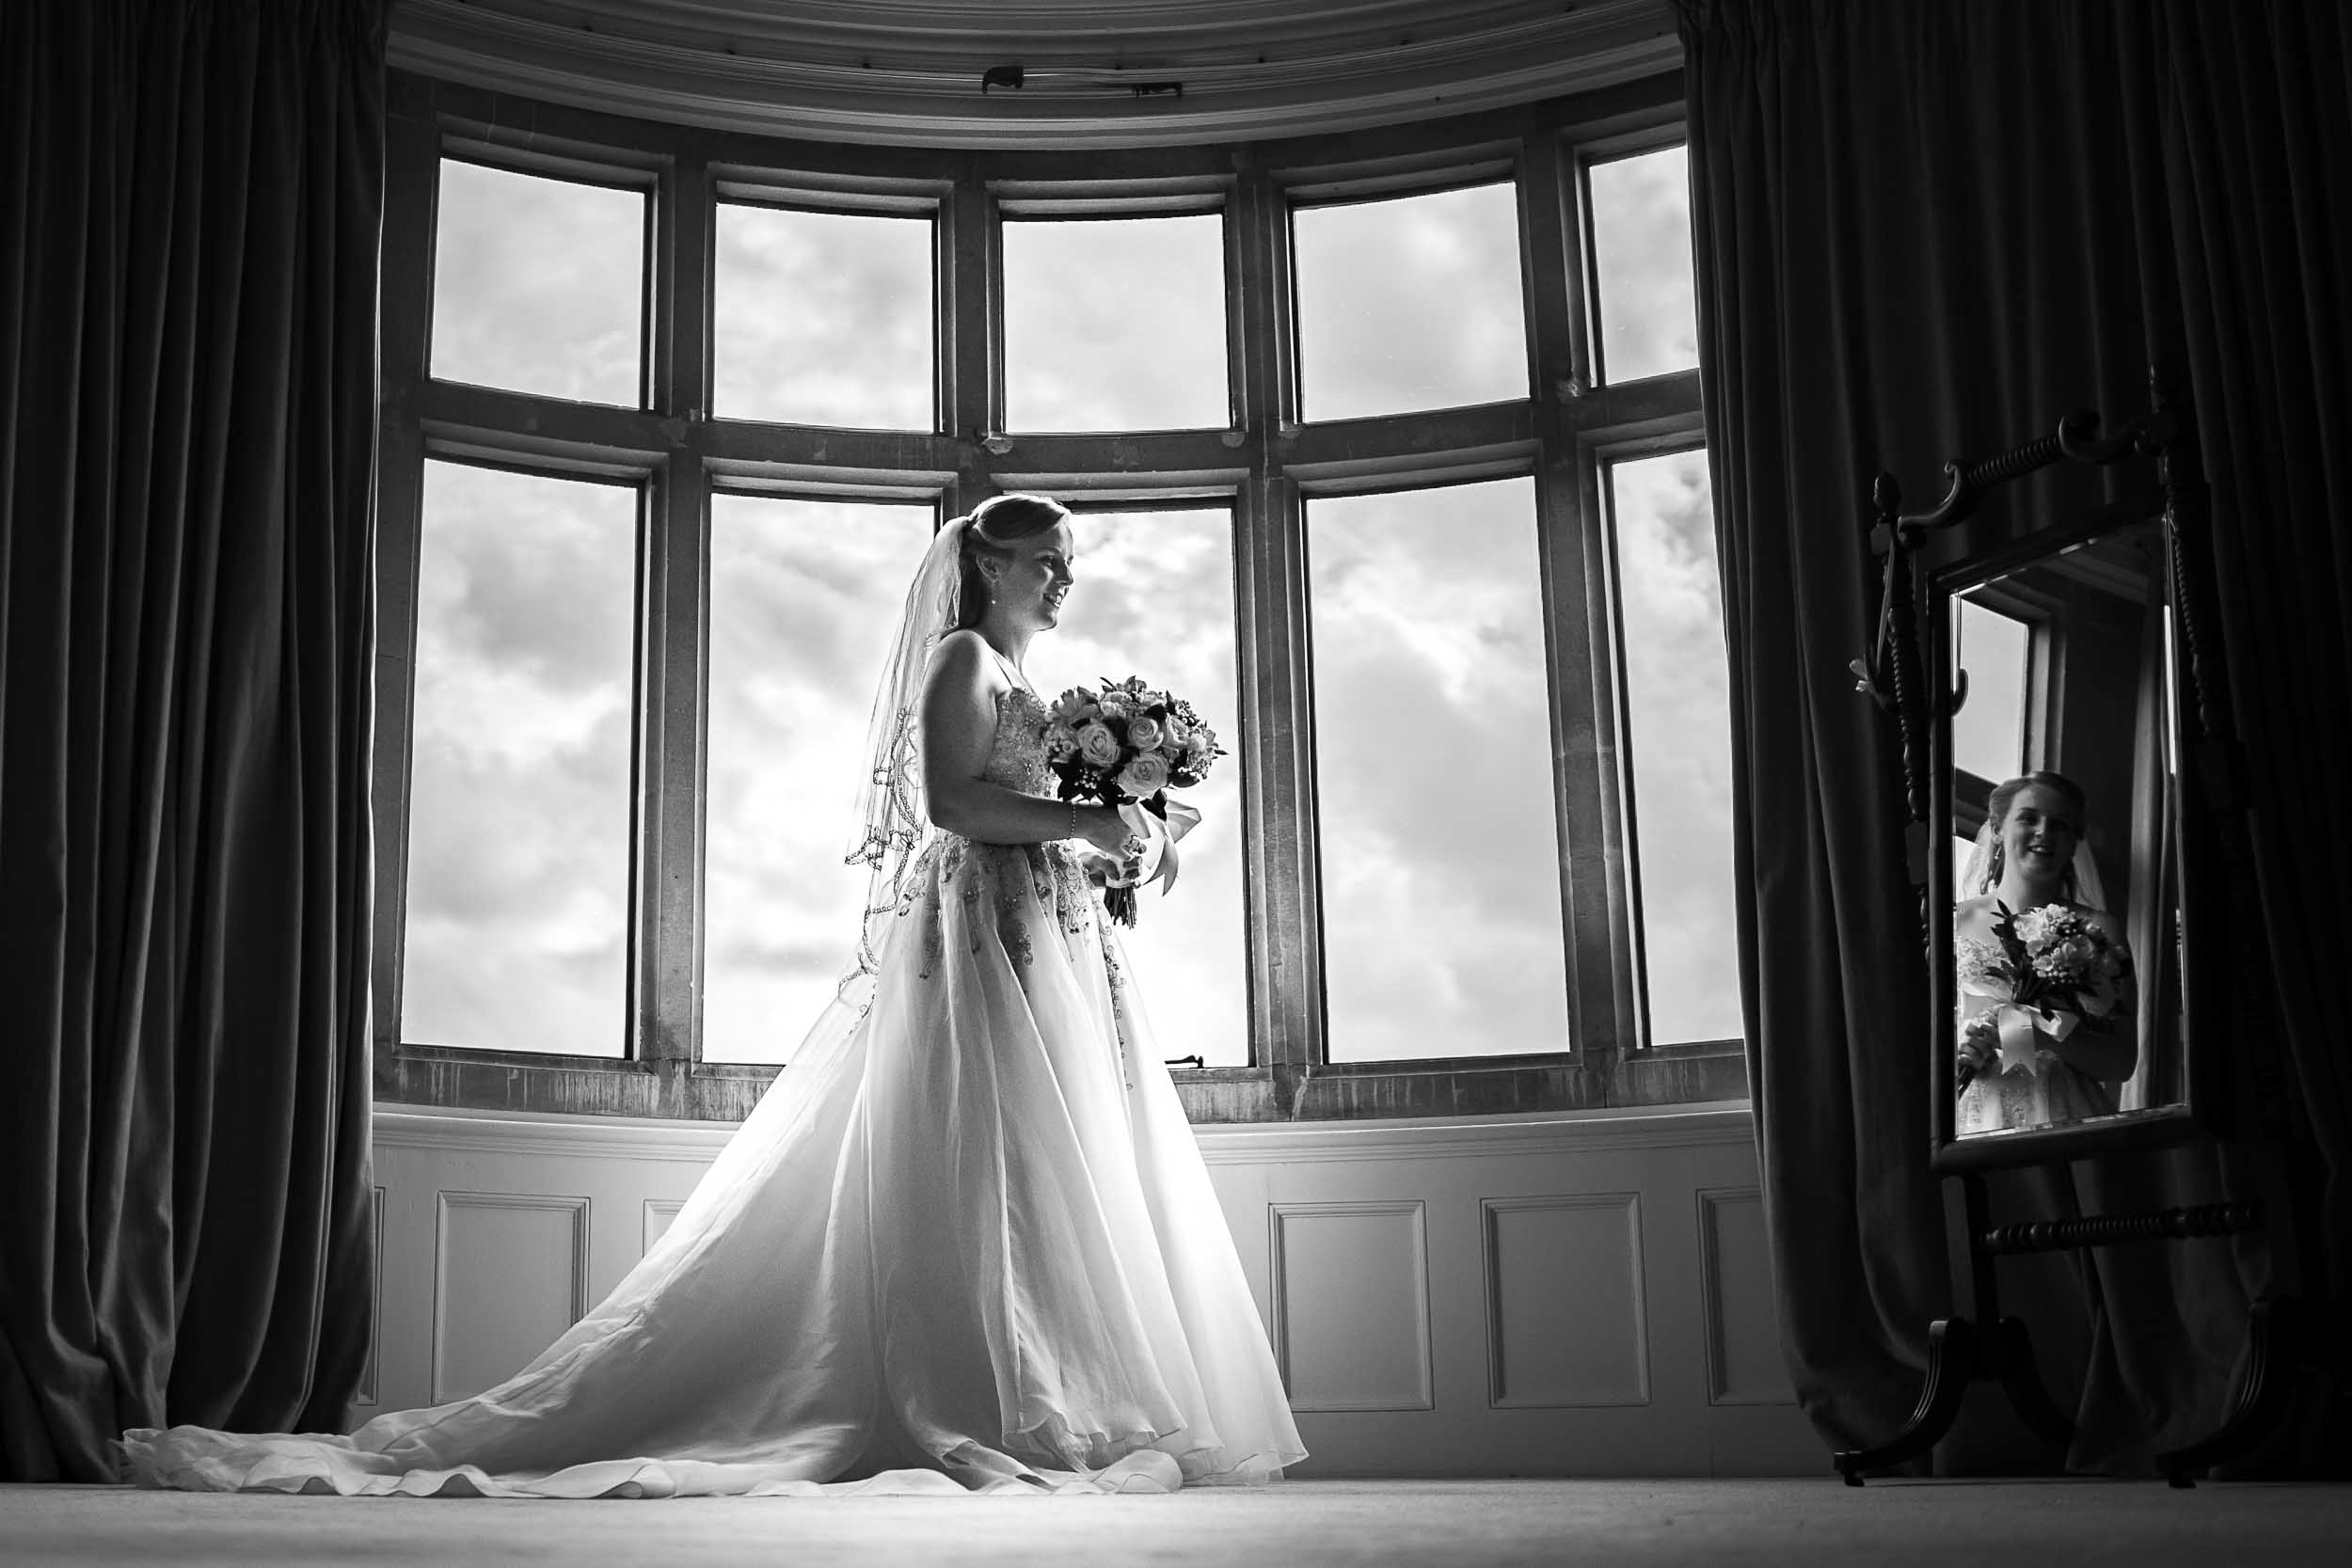 Whitney Court Estate, Whitney, Court, Estate, Wedding, Photographer, Weddings, Herefordshire, West-Midlands,Whitney court wedding photographer, David Liebst